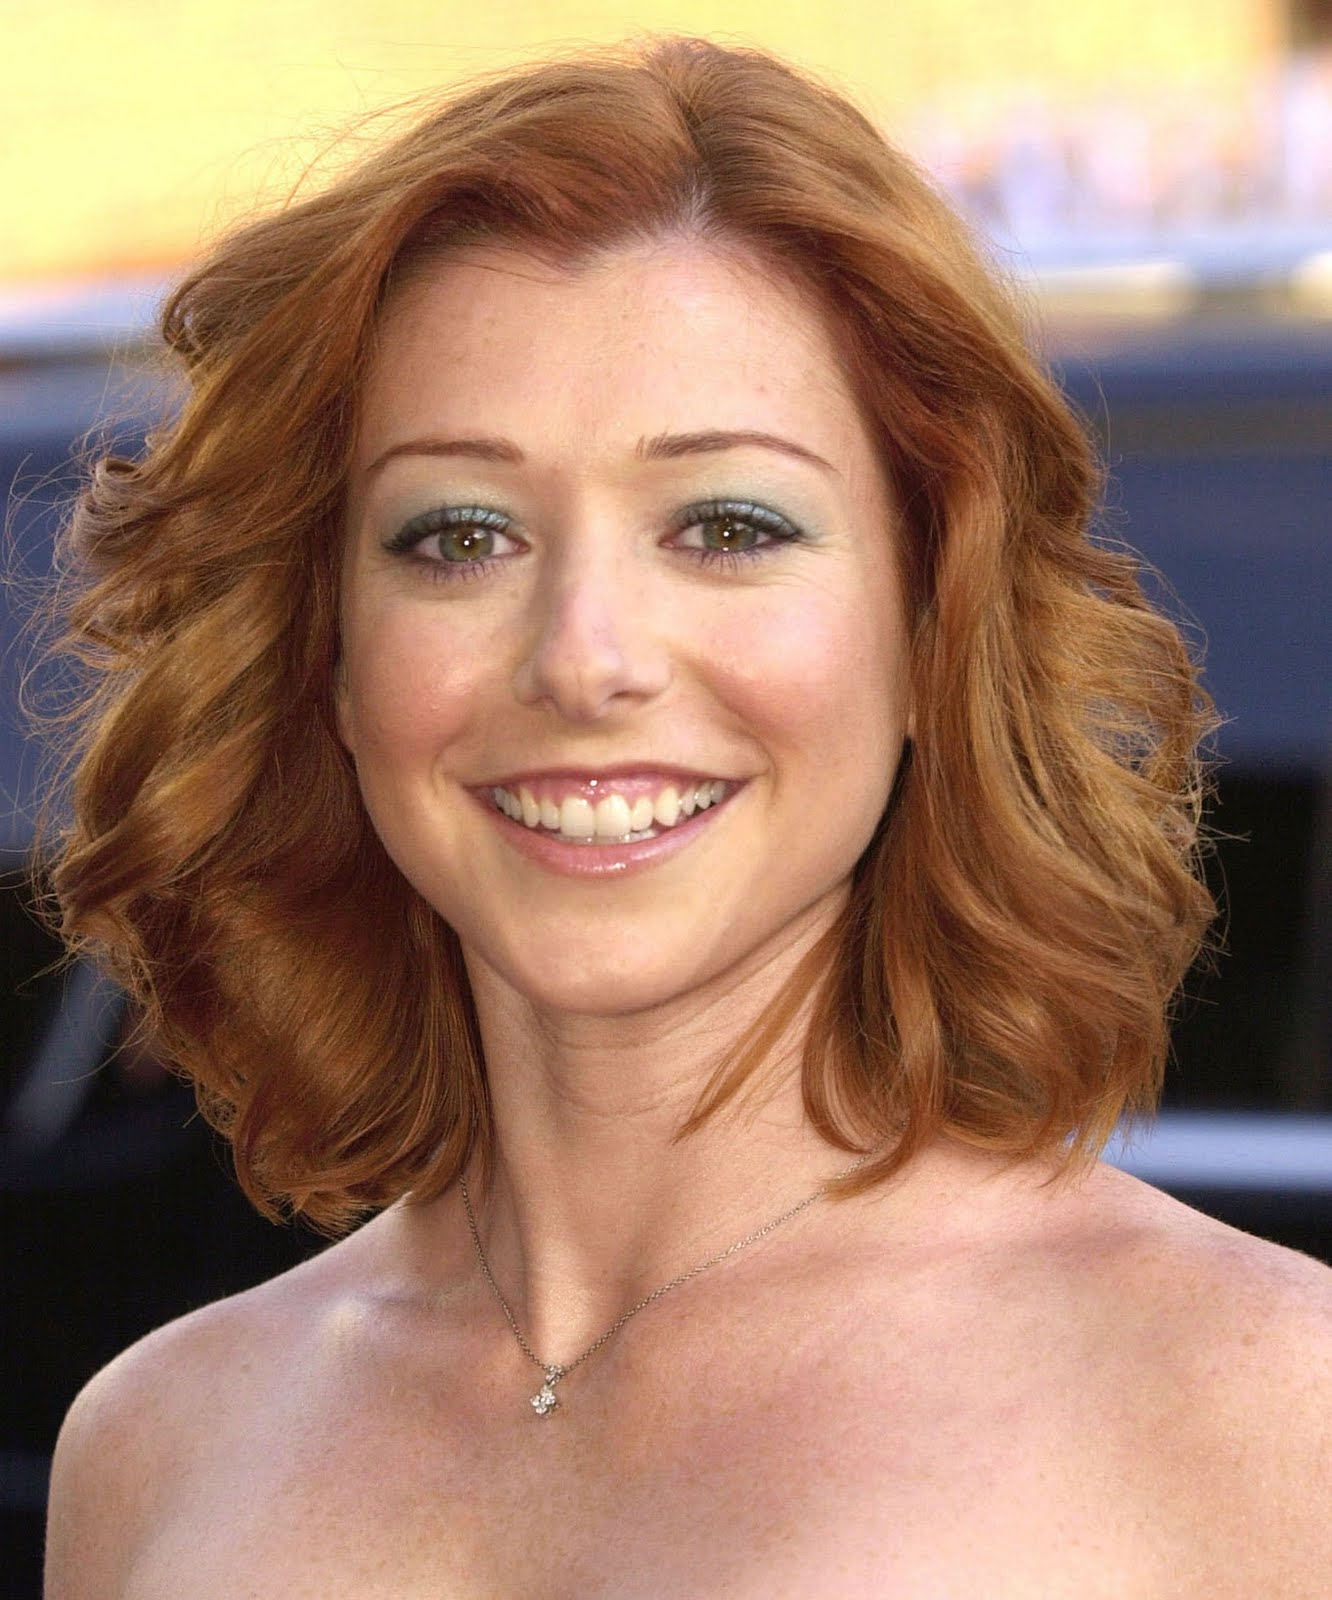 Celebrity Alyson Hannigan nudes (68 foto and video), Tits, Hot, Boobs, braless 2019